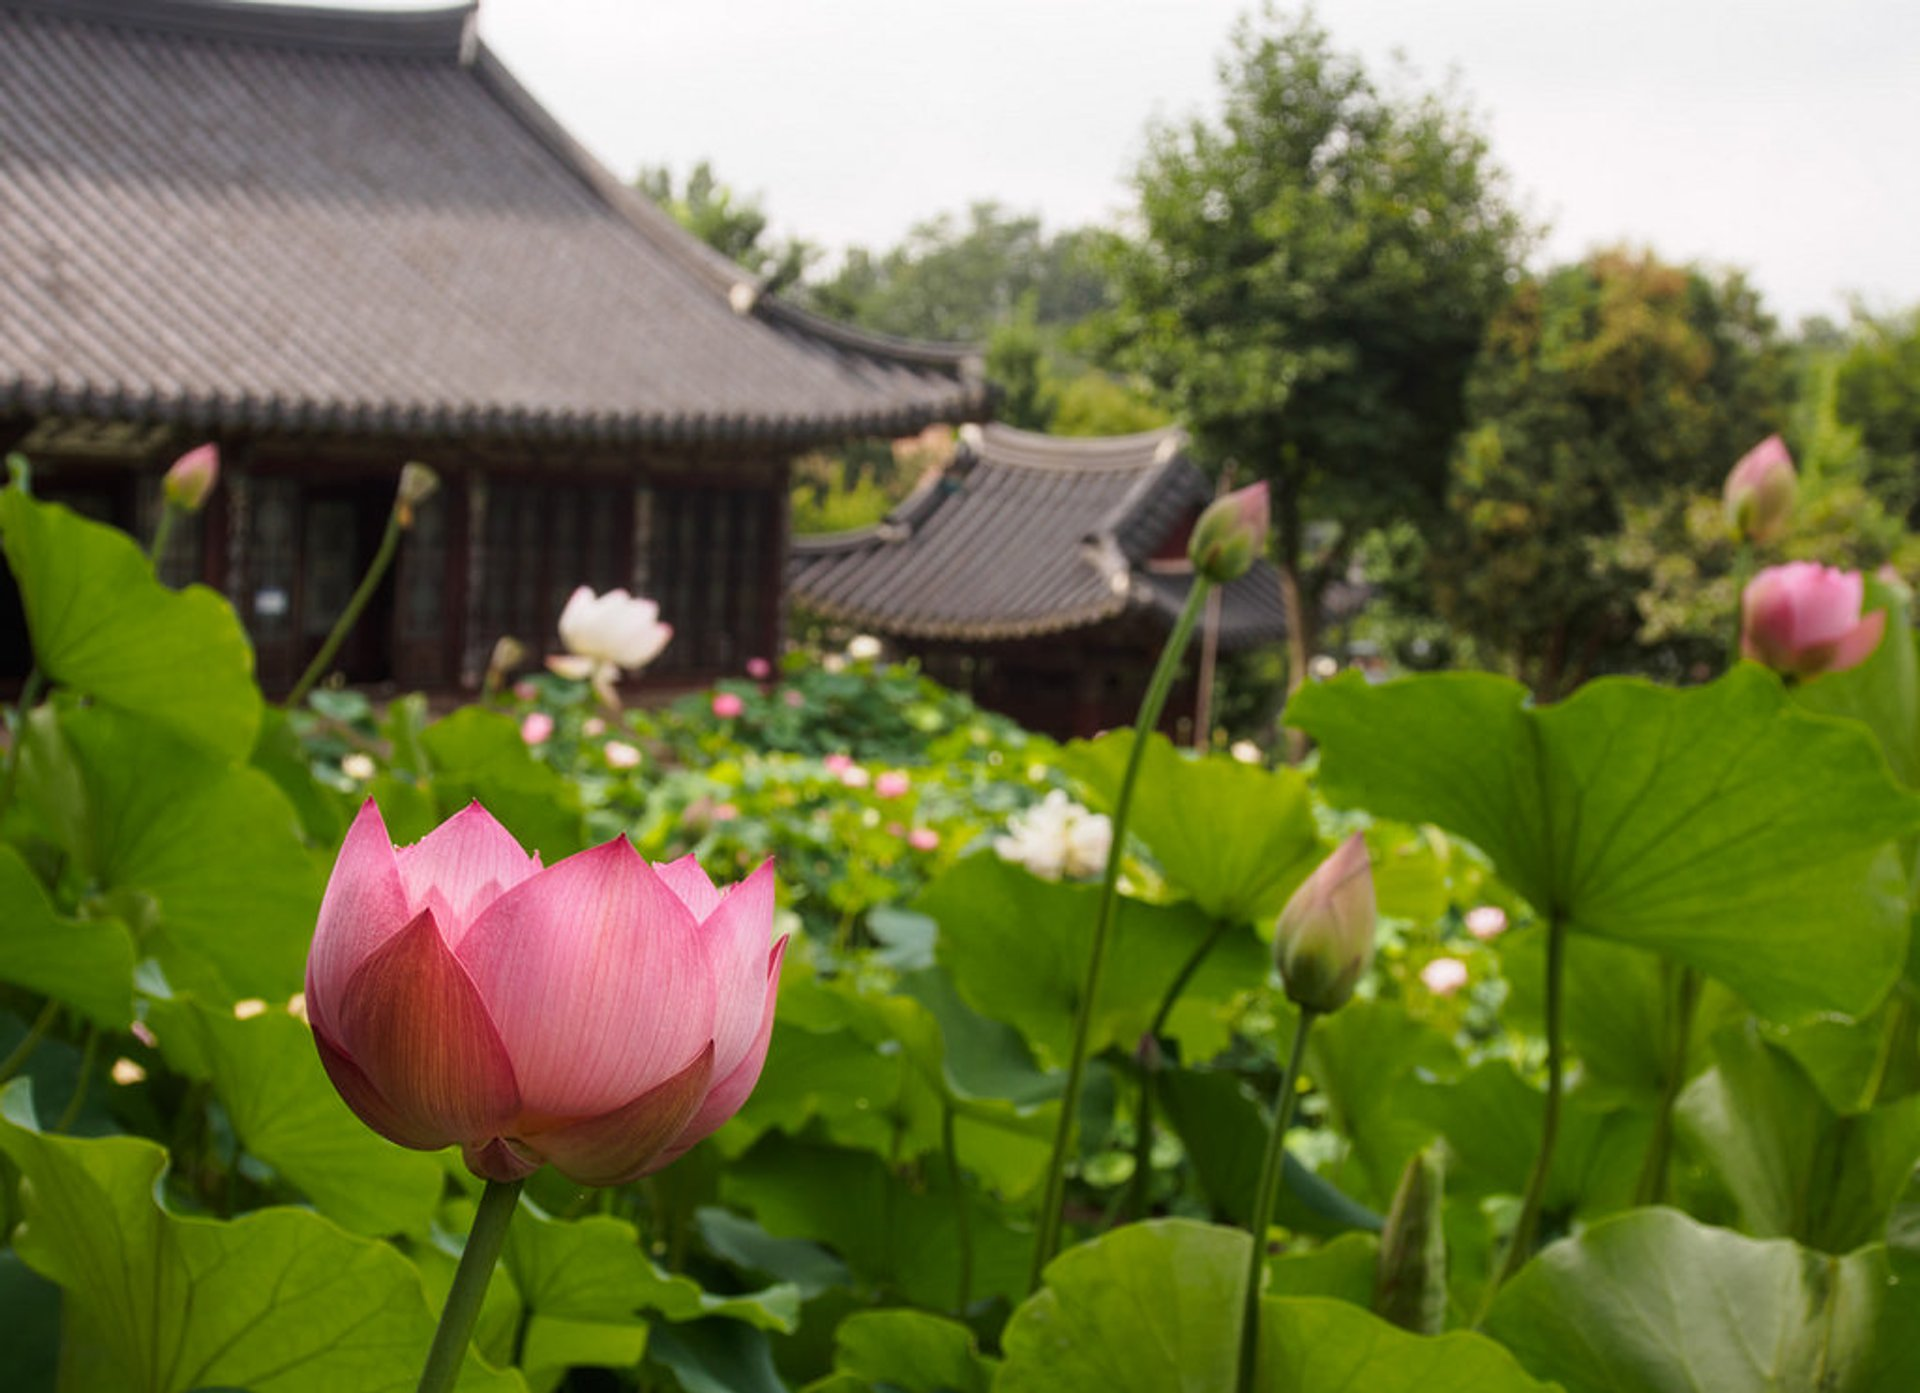 Lotus Flower in South Korea 2019 - Best Time